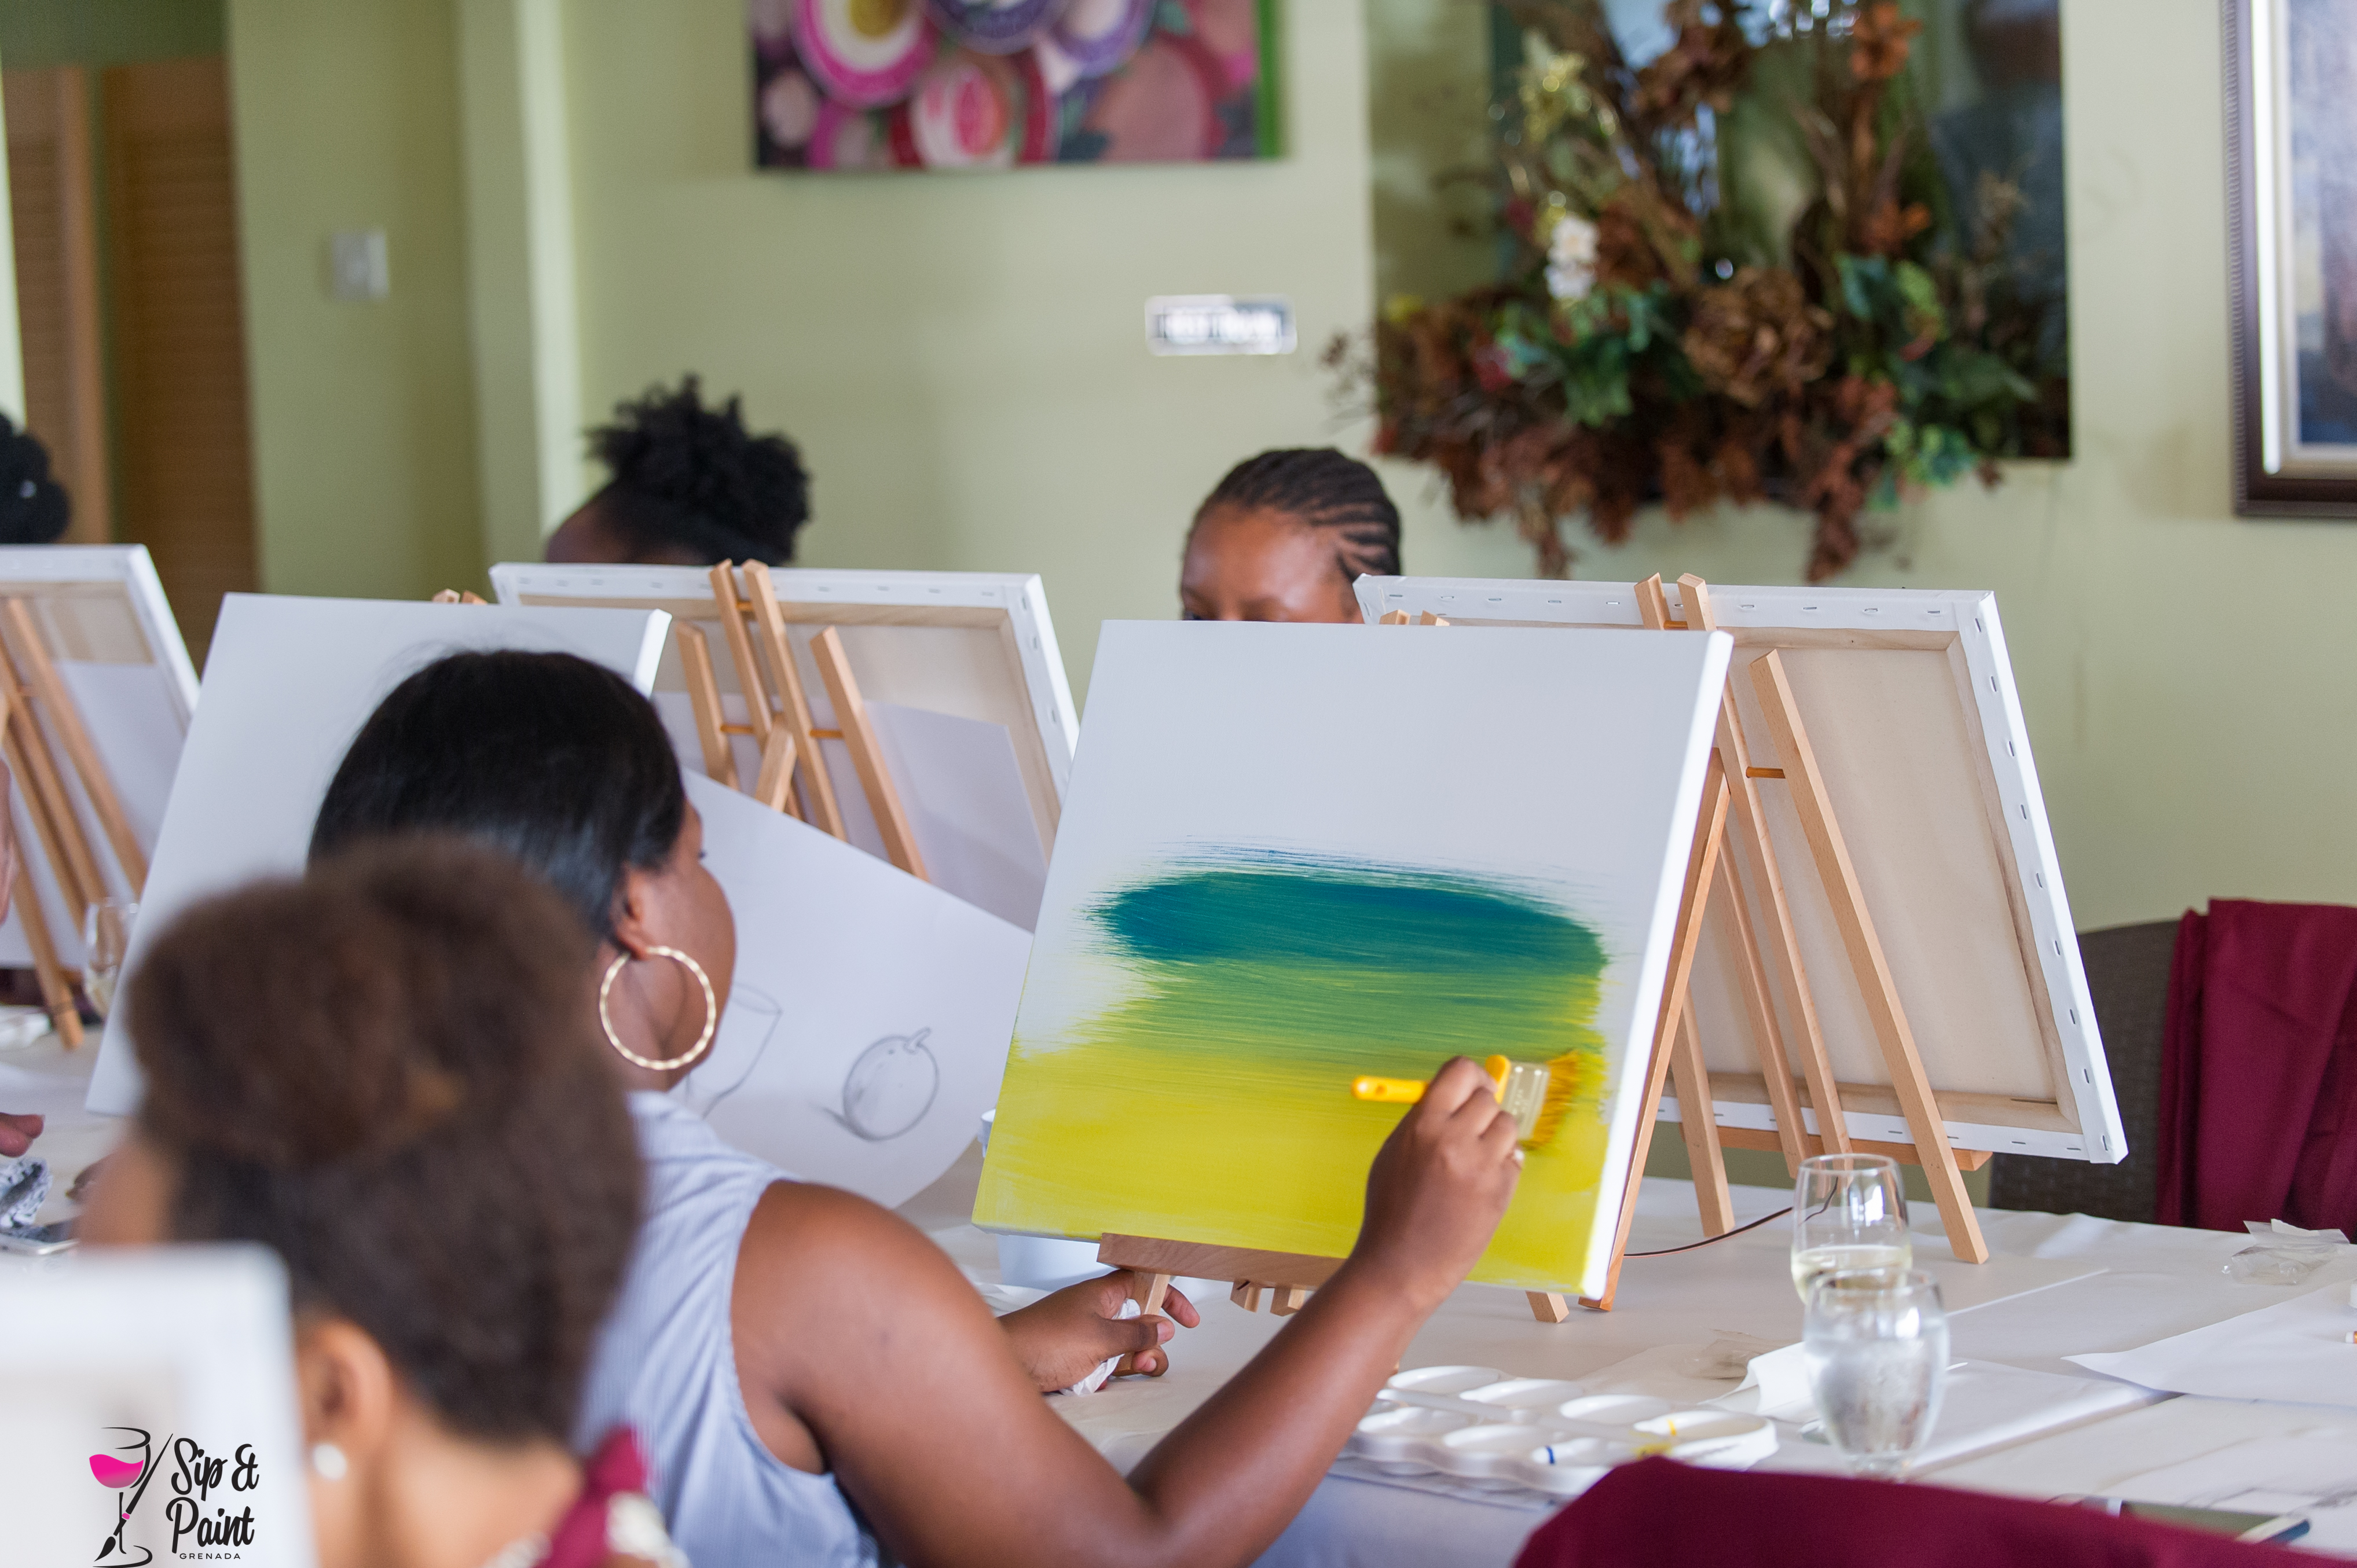 Sip & Paint Sessions